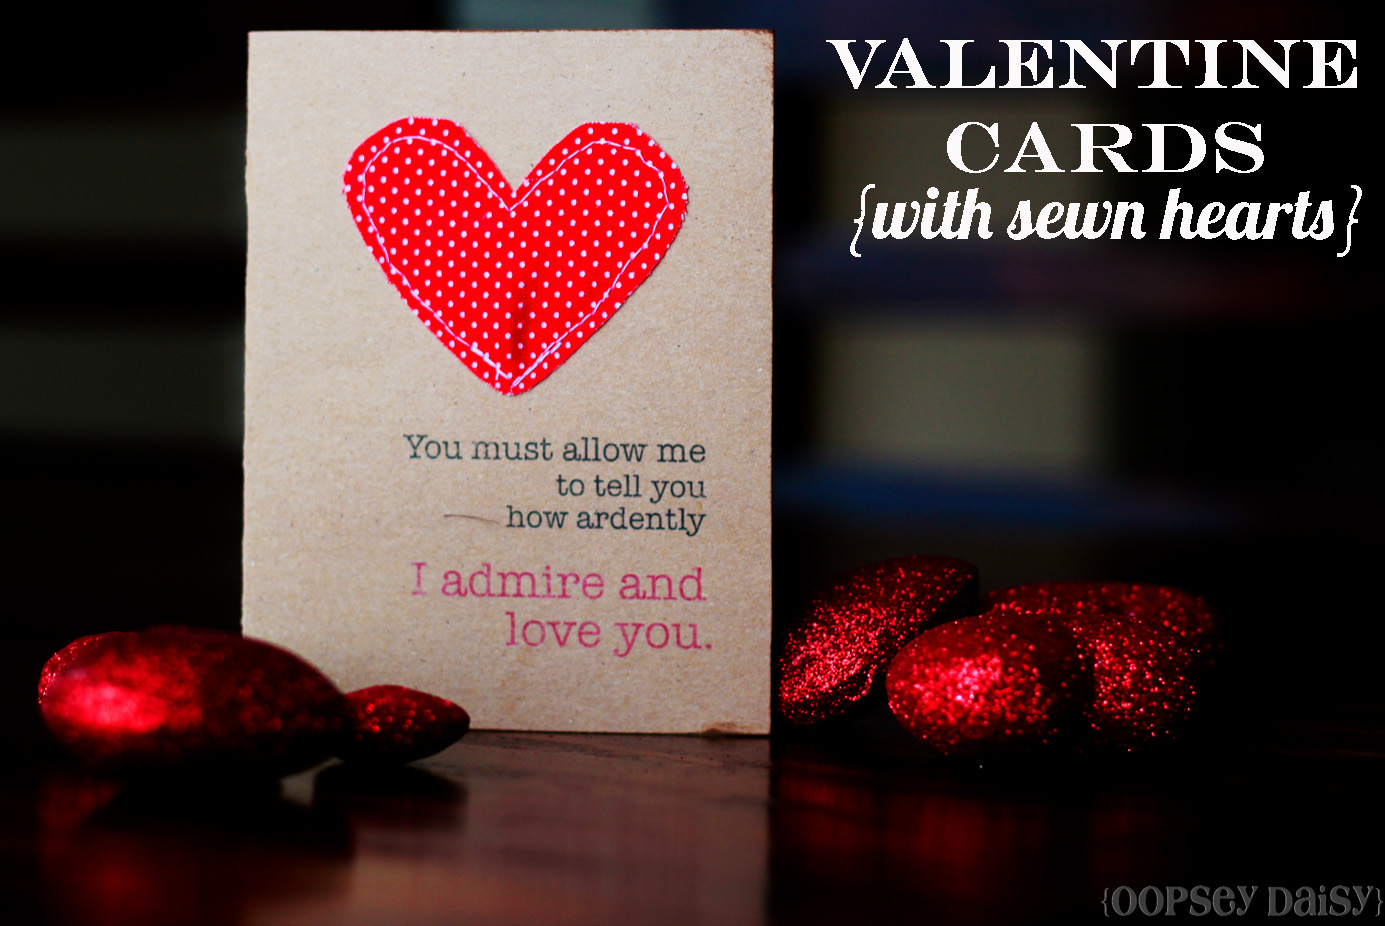 Valentine Cards With Sewn Hearts Easy Peasy Valentines – Special Valentine Cards